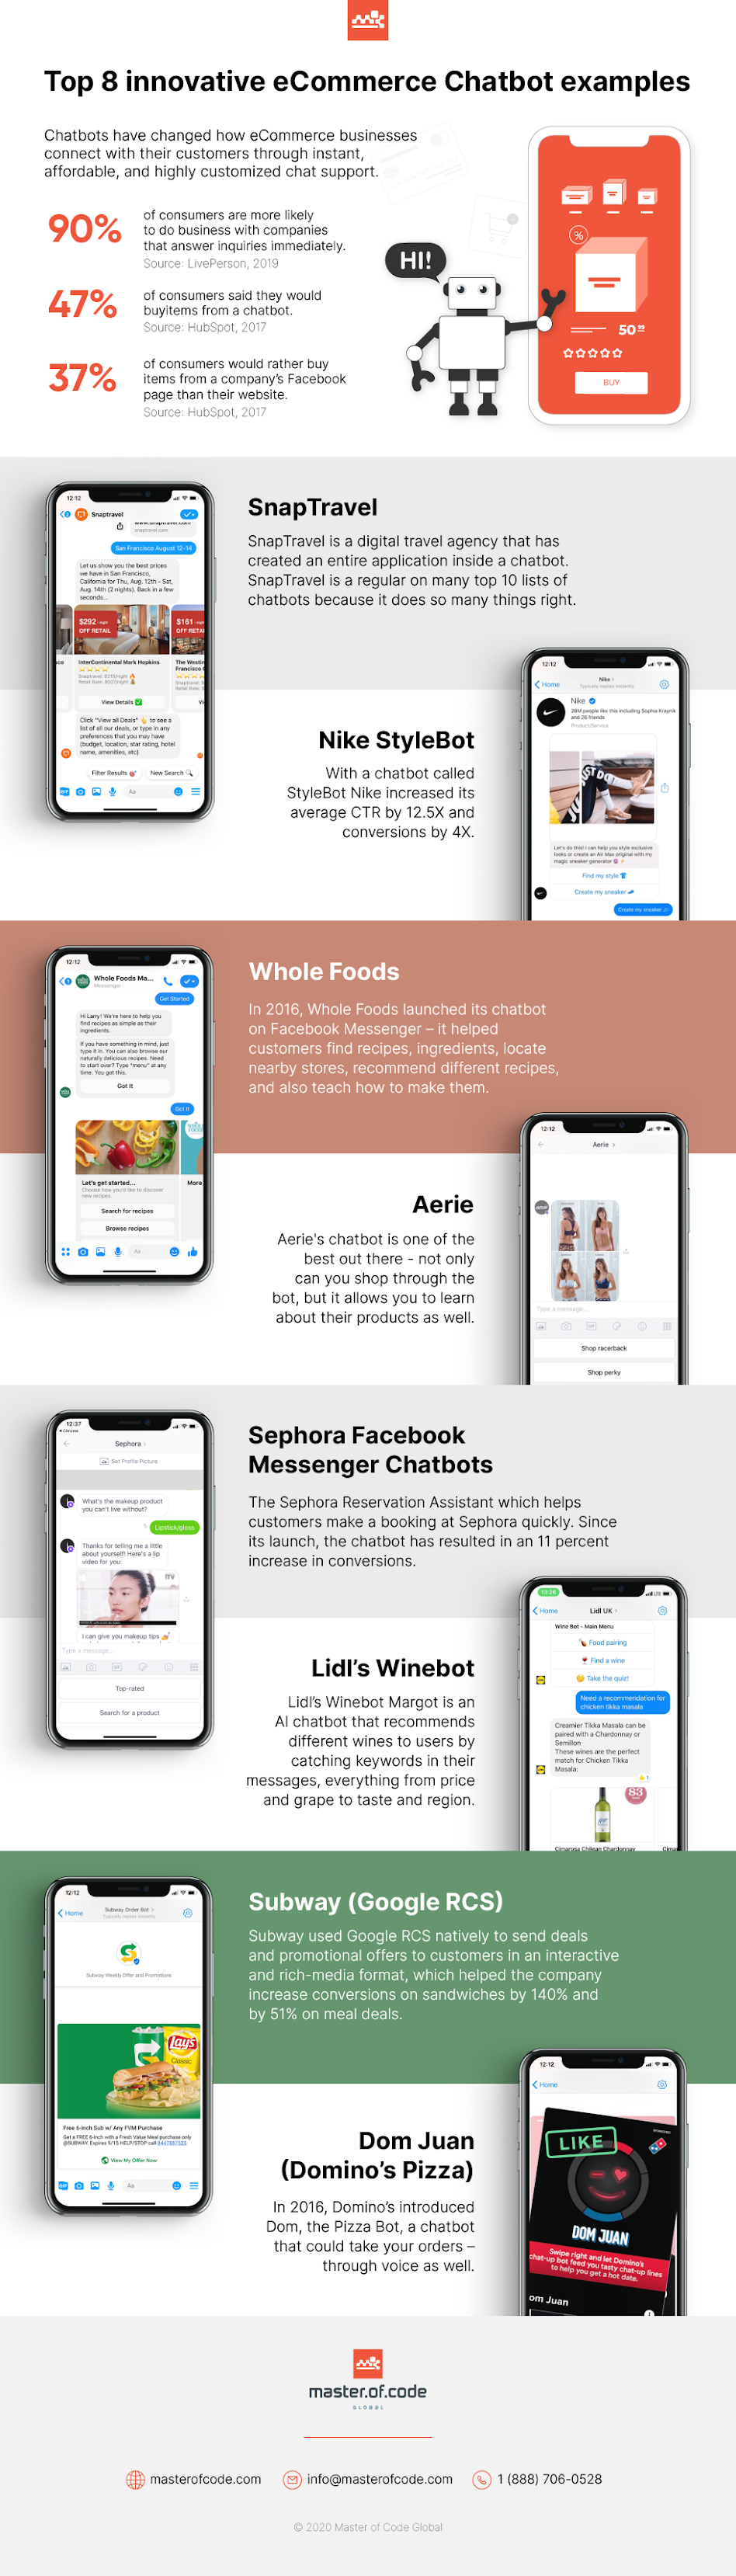 Top 8 Examples of Chatbots in the eCommerce Industry in 2020 #infographic #chatbots #eCommerce #eCommerce Industry